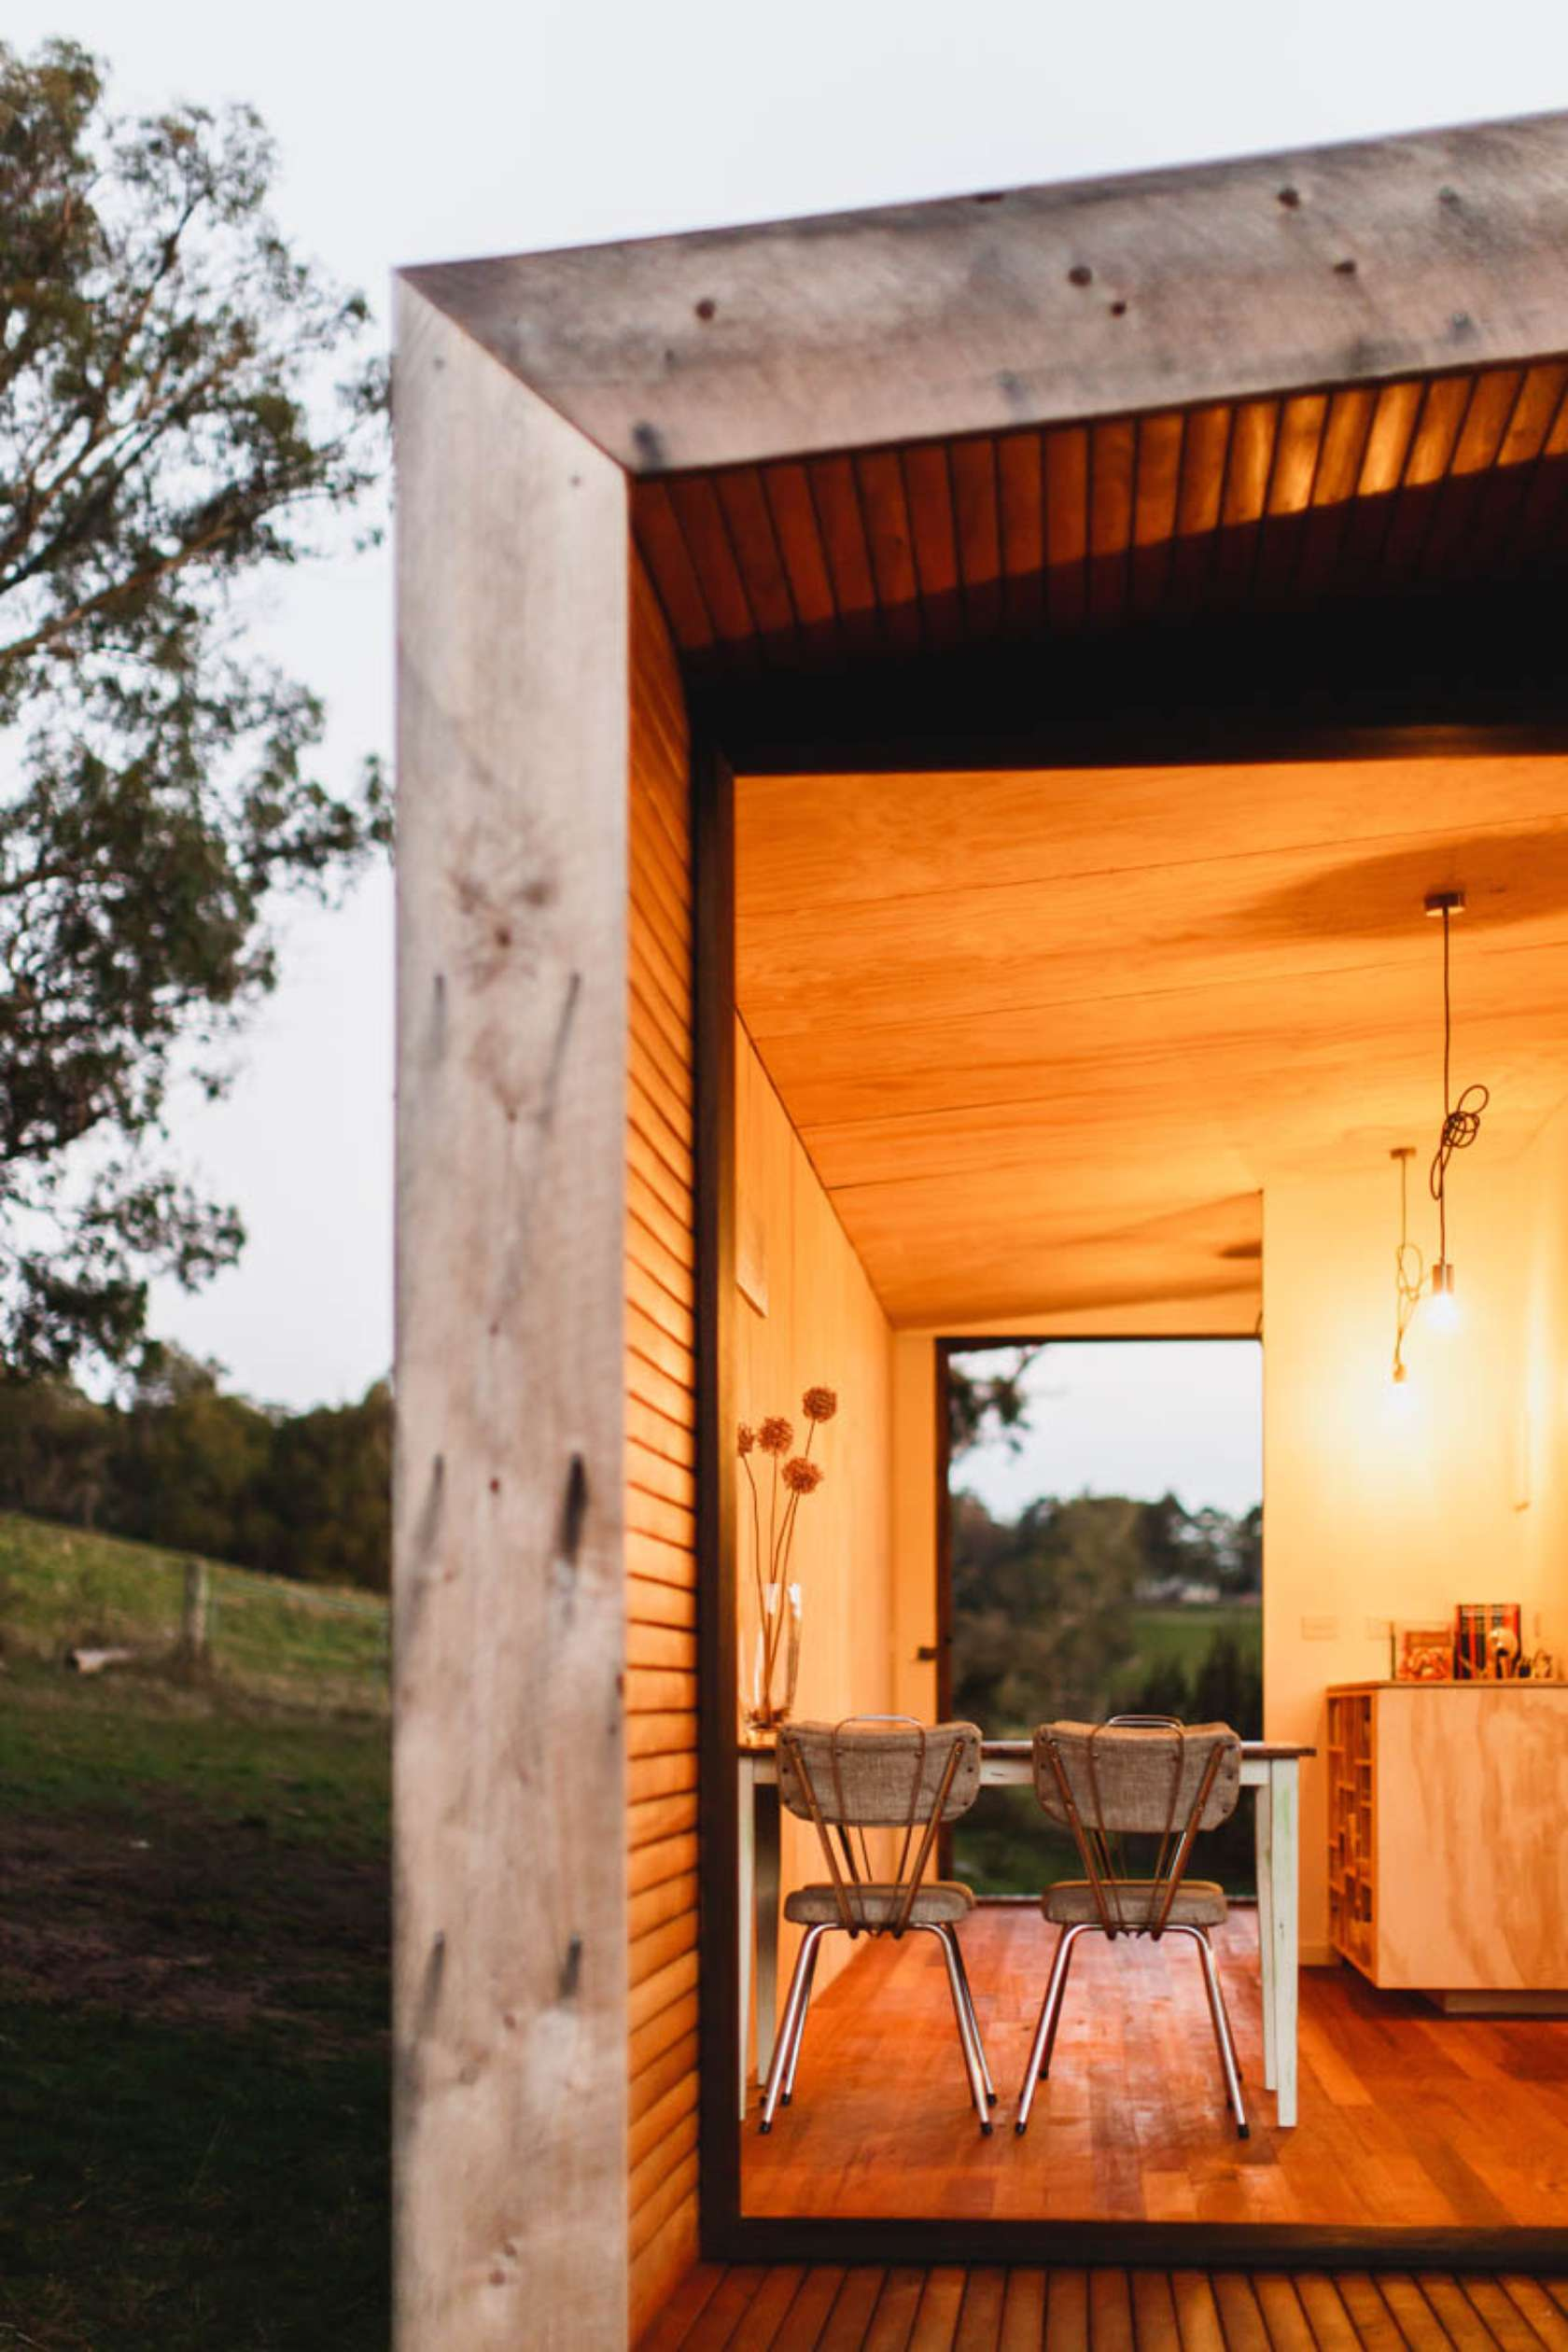 Pump House: A Compact Off-Grid Home for Simple Living